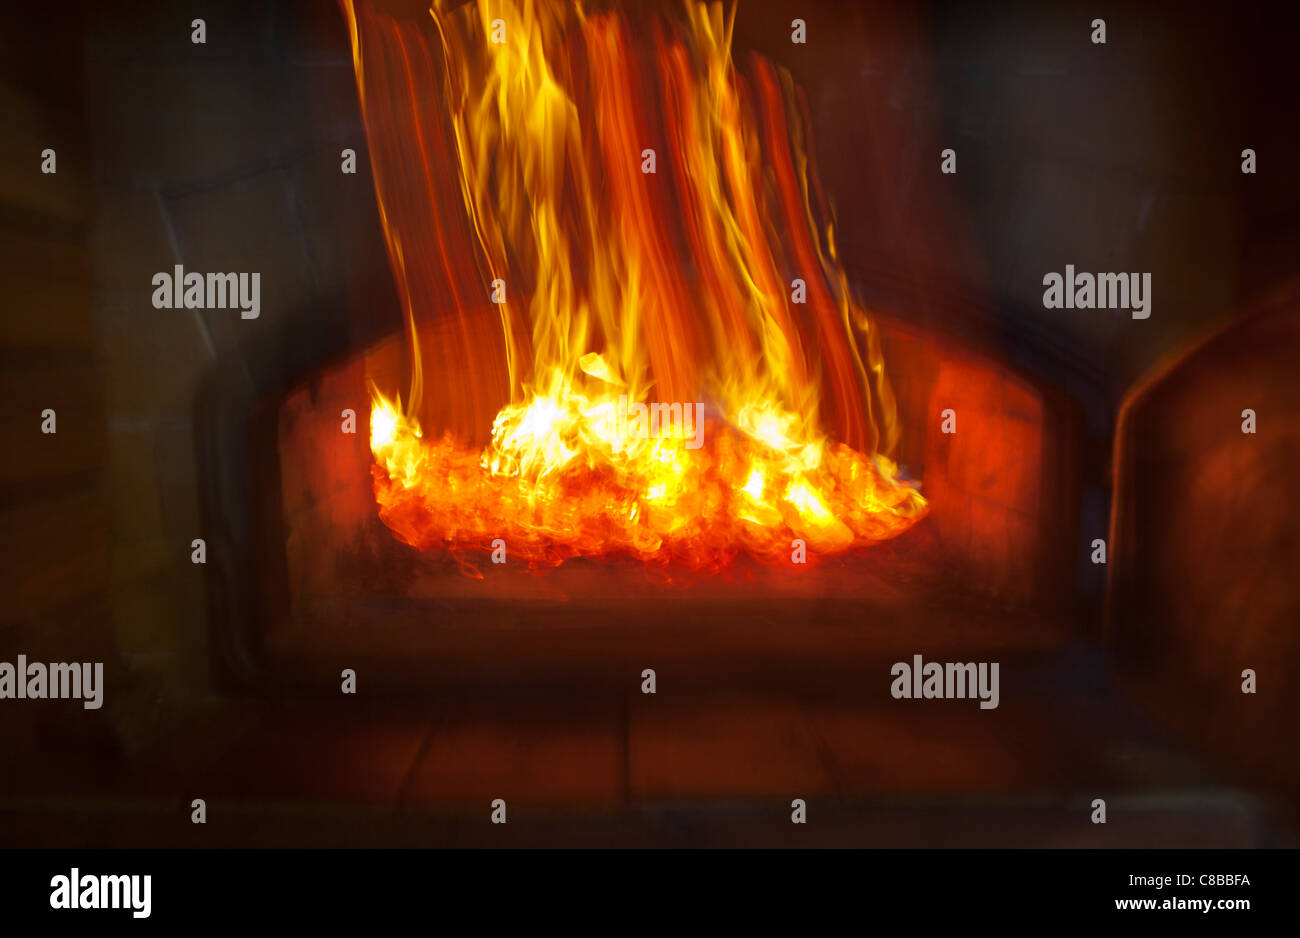 Wood coals glowing inside fireplace - Stock Image